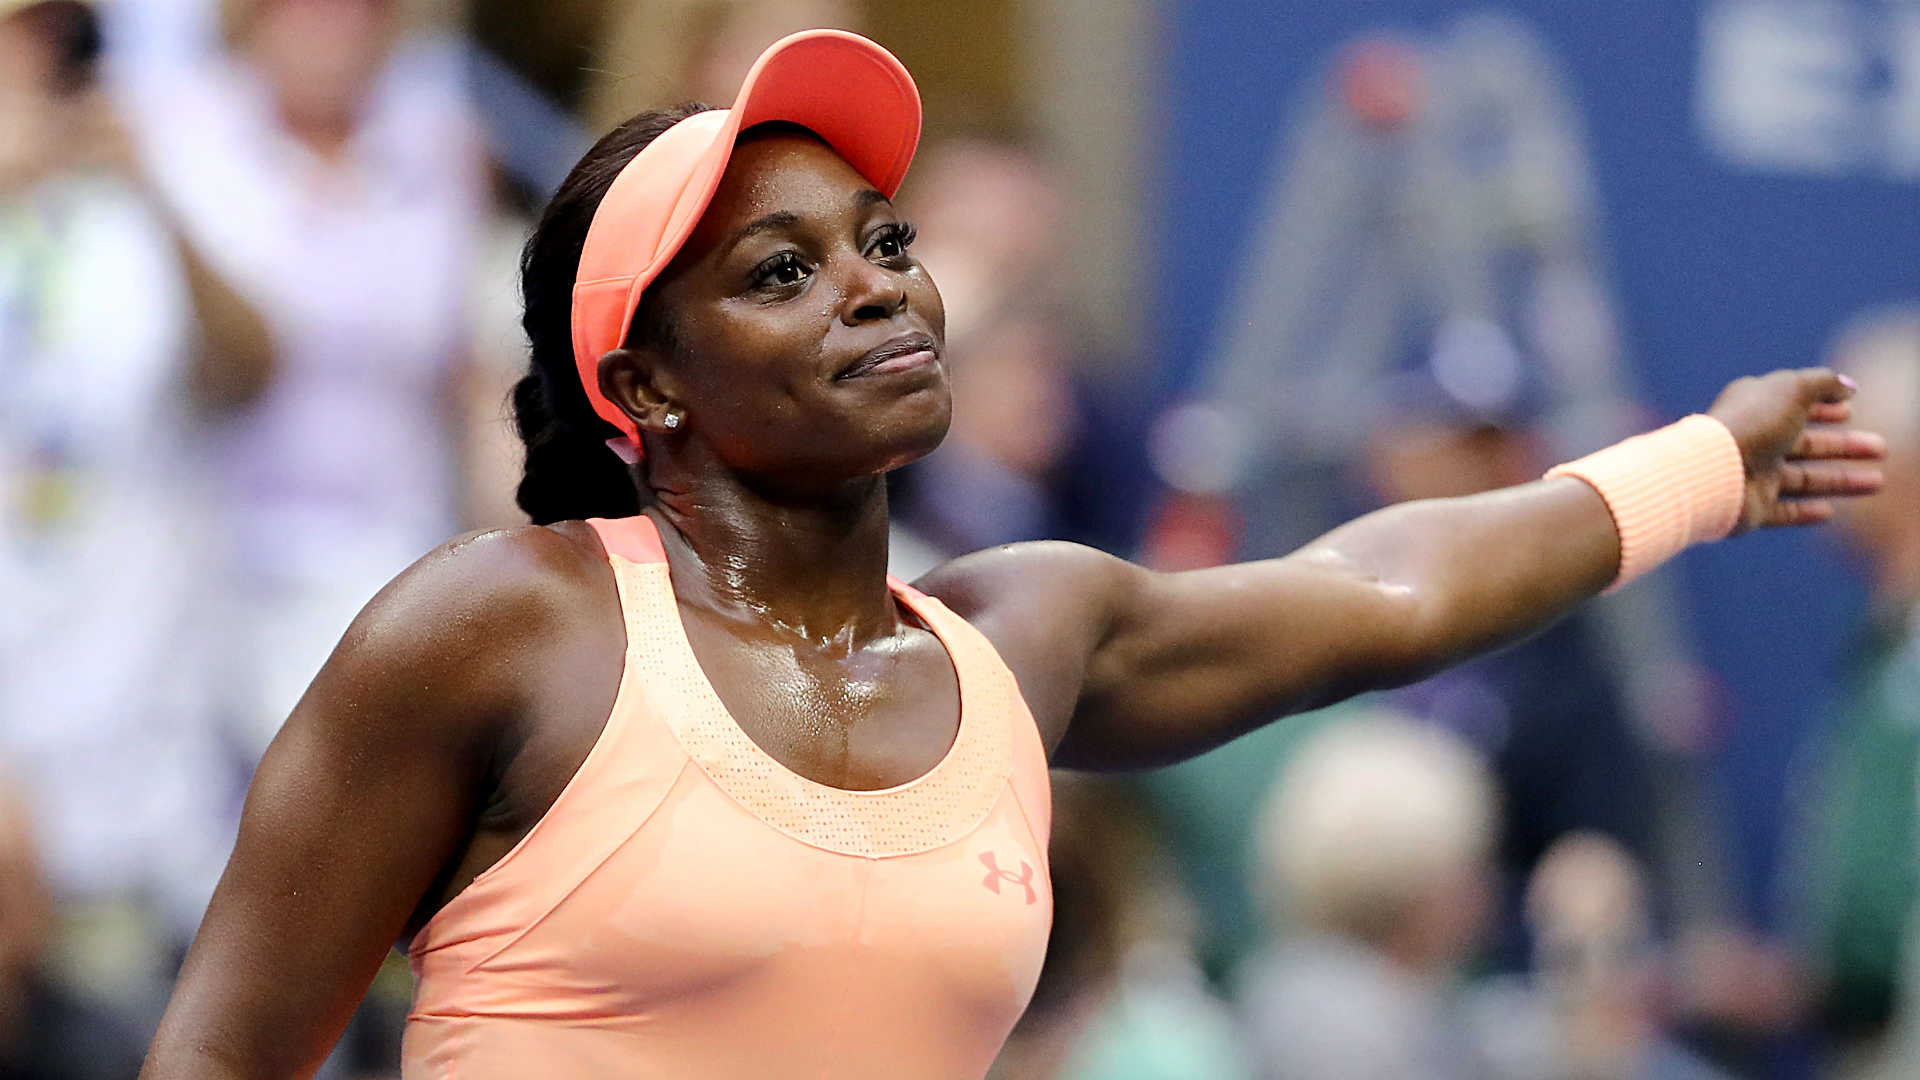 U.S. Open tennis: Sloane Stephens wins first career Grand Slam with dominant performance ...